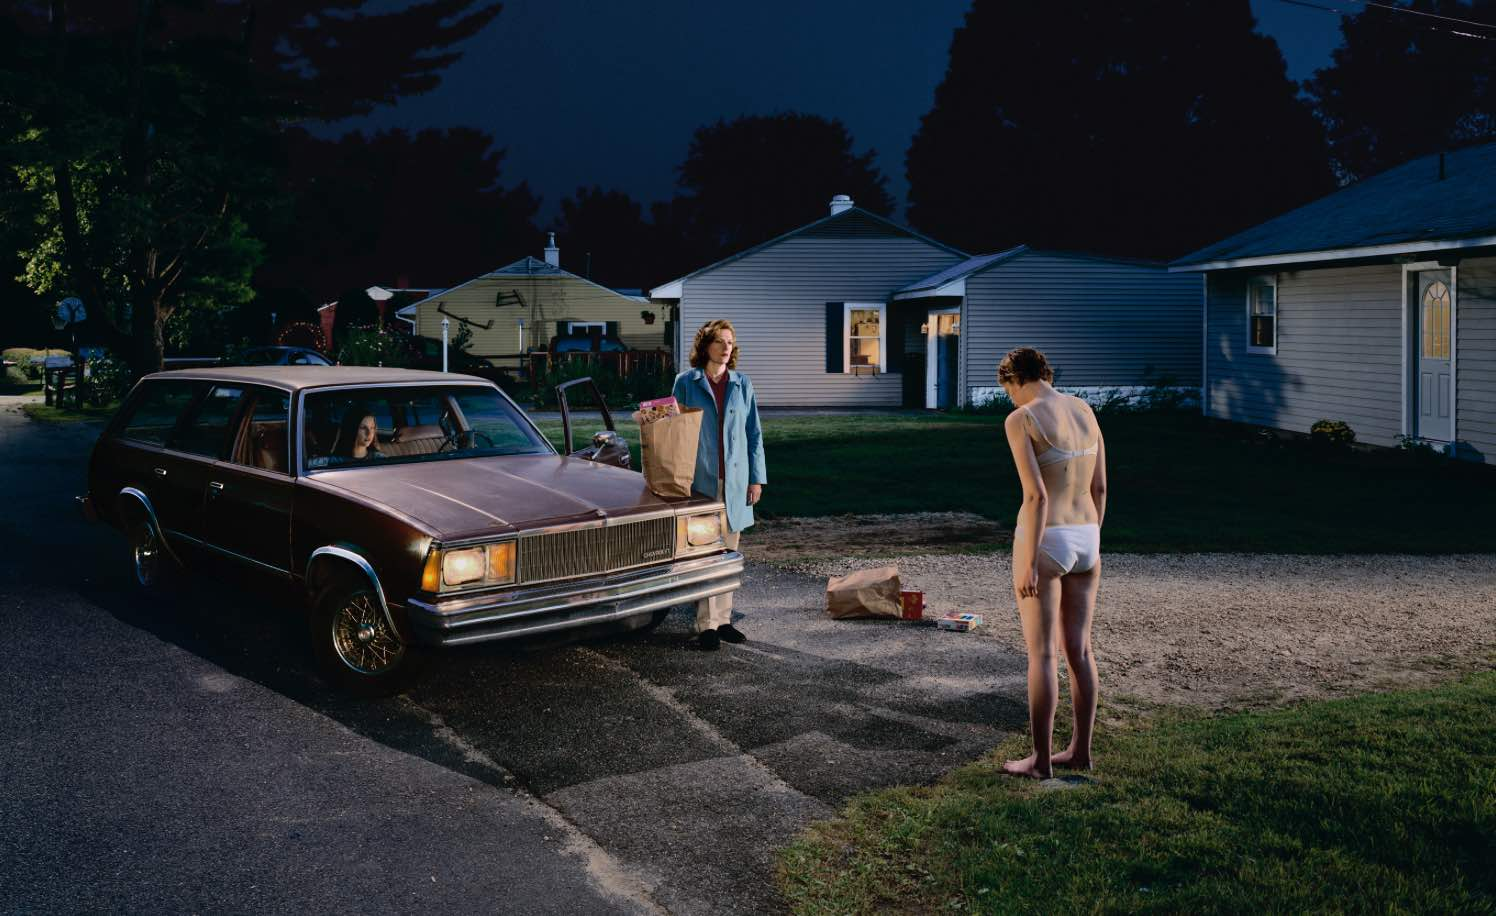 The work of Gregory Crewdson, from    Twilight